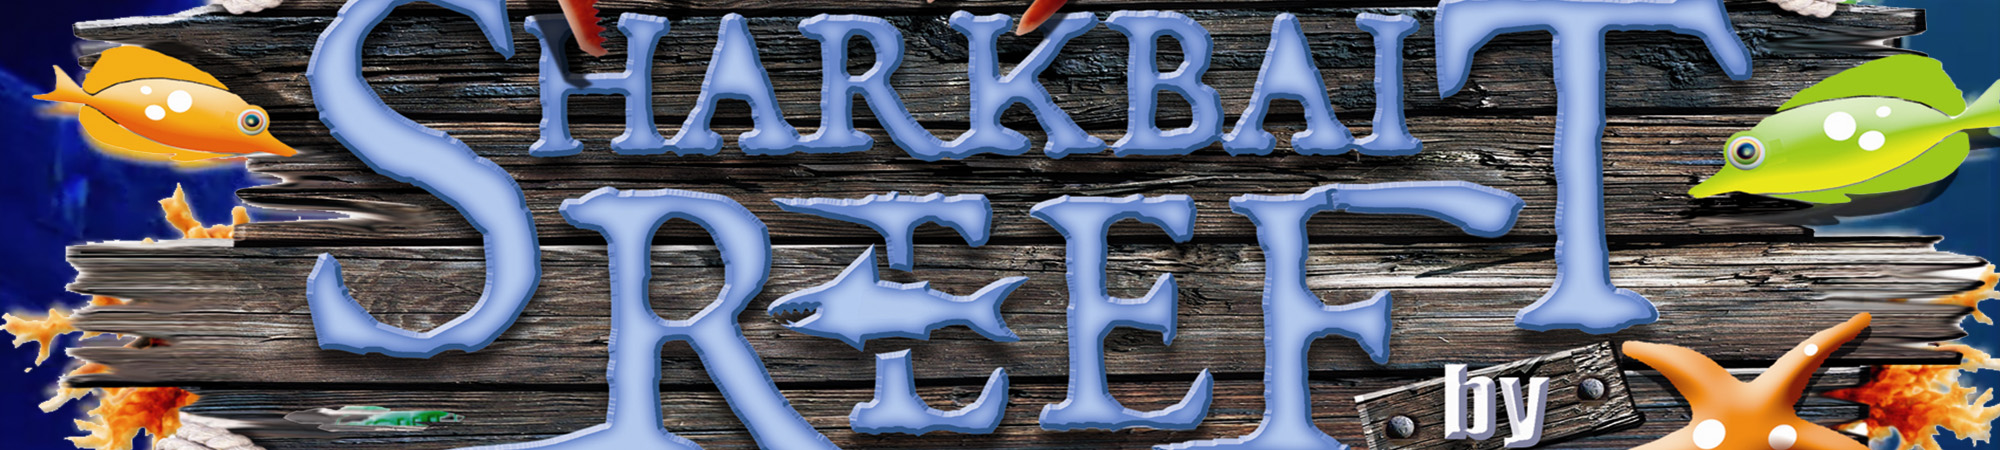 Sharkbait Reef logo close-up from video